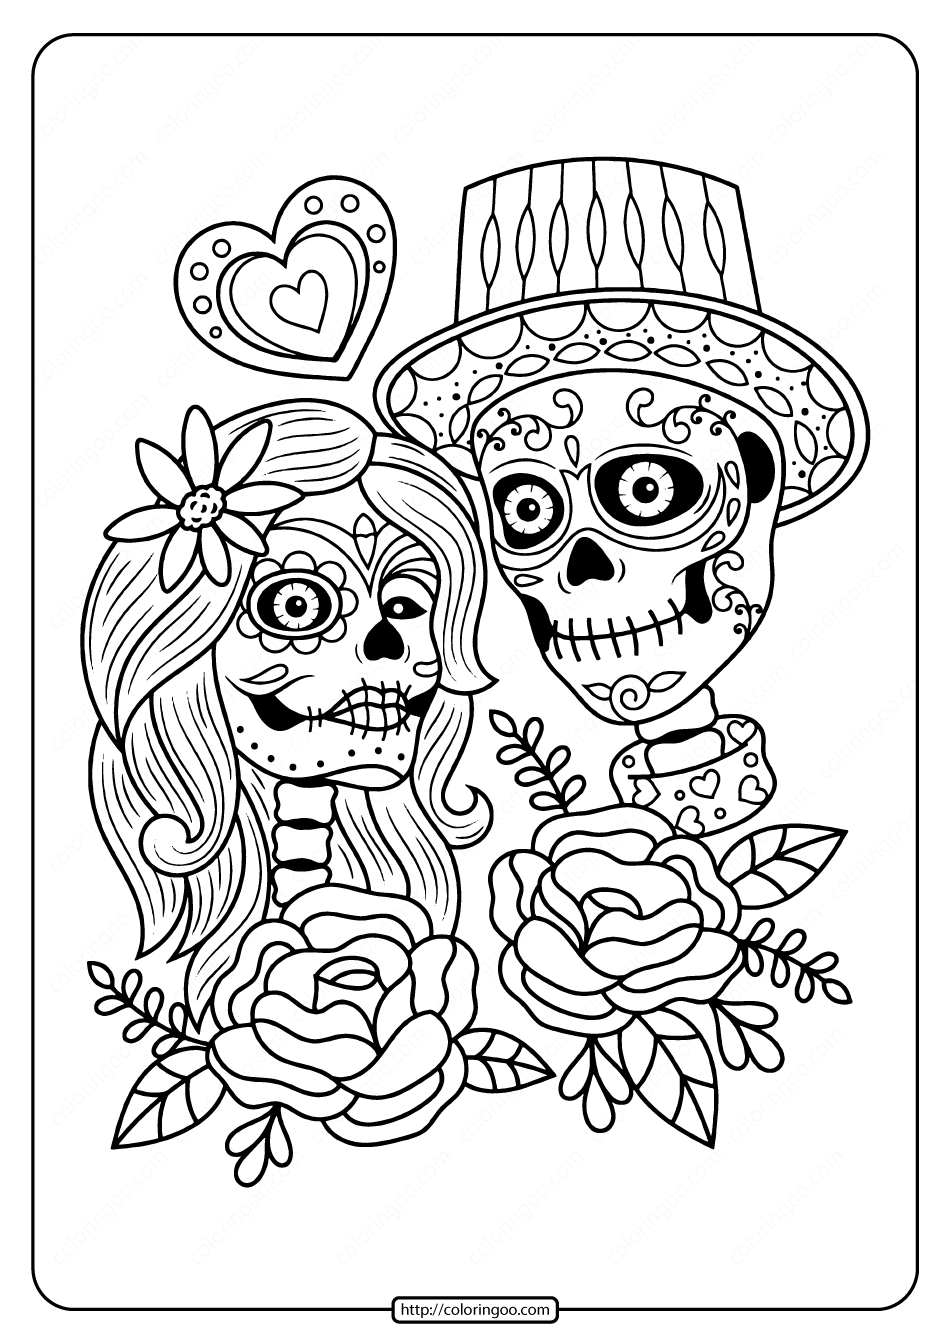 day of the dead coloring pages free free printable day of the dead coloring pages best day coloring dead of free pages the